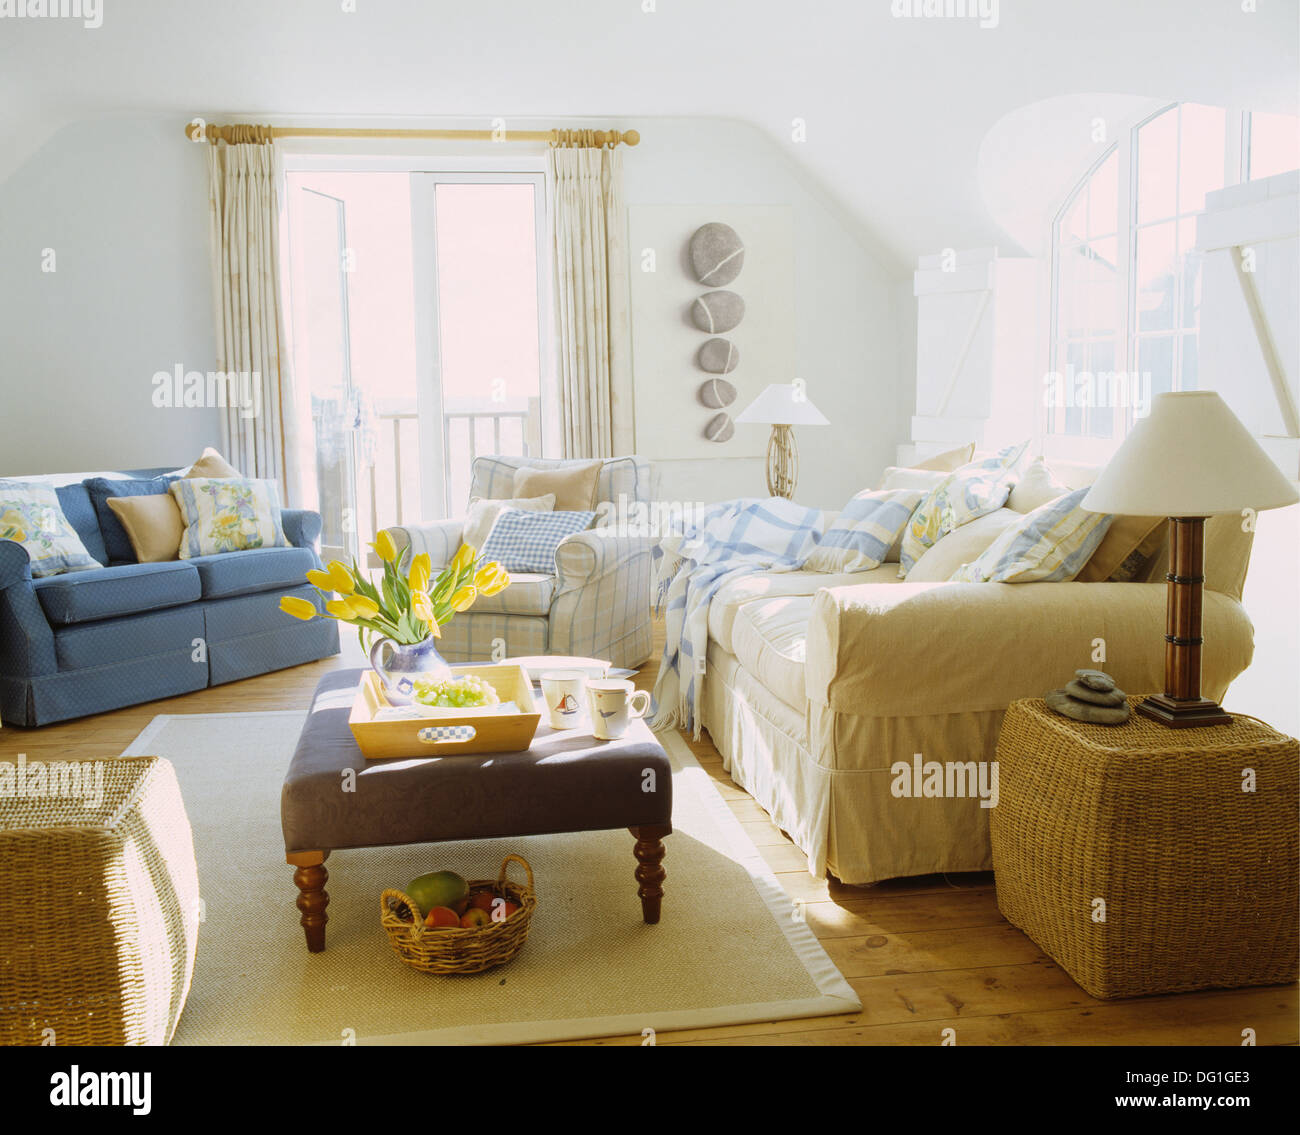 Wicker Cube Tables And Blue And Cream Sofas In White Coastal Living Stock Photo Alamy